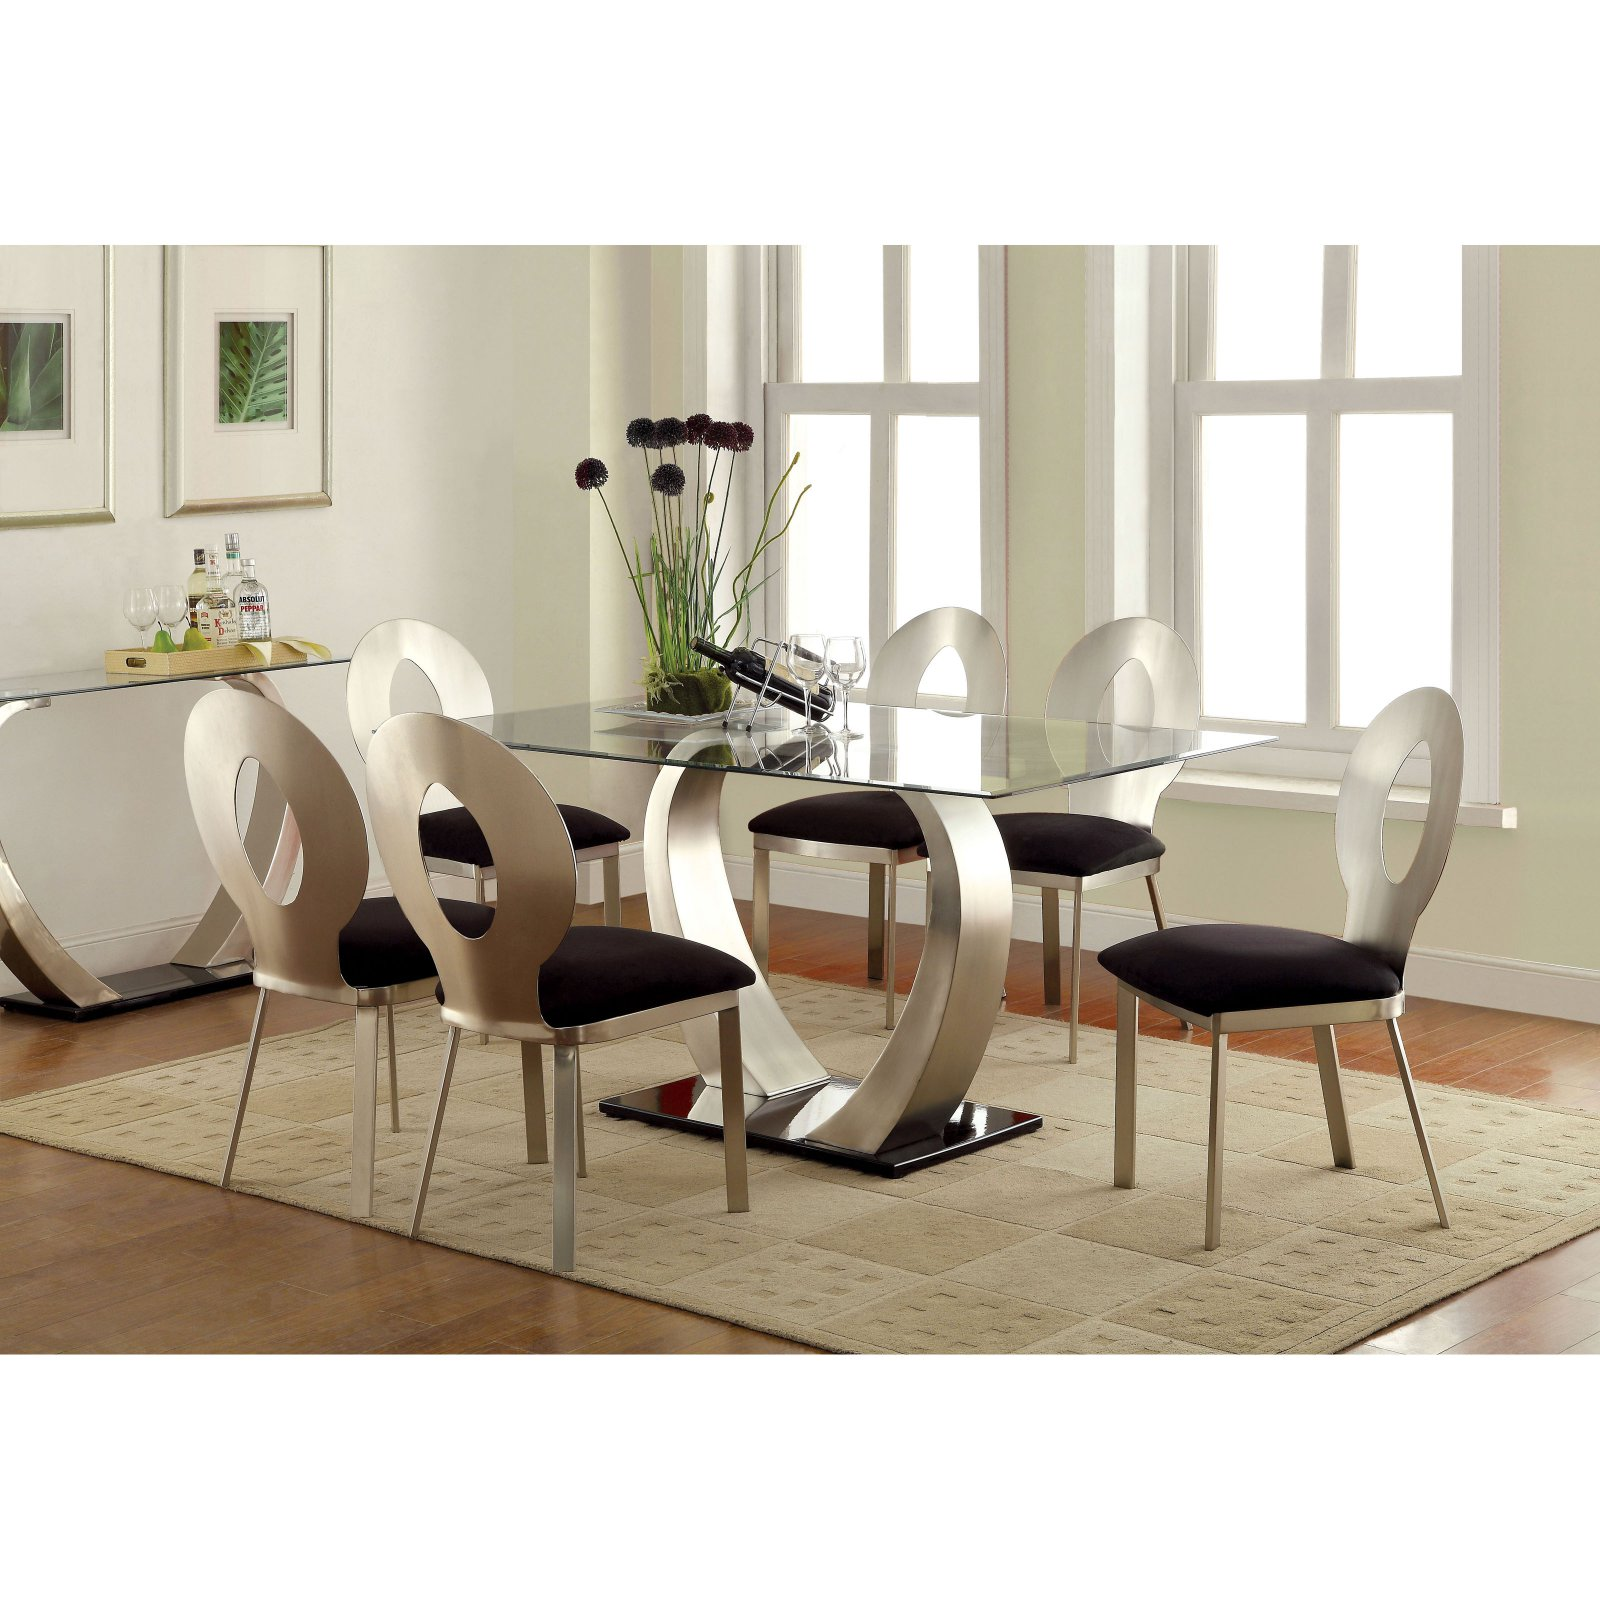 Furniture of America Sparling 7 Piece Dining Table Set with Open Back Chairs